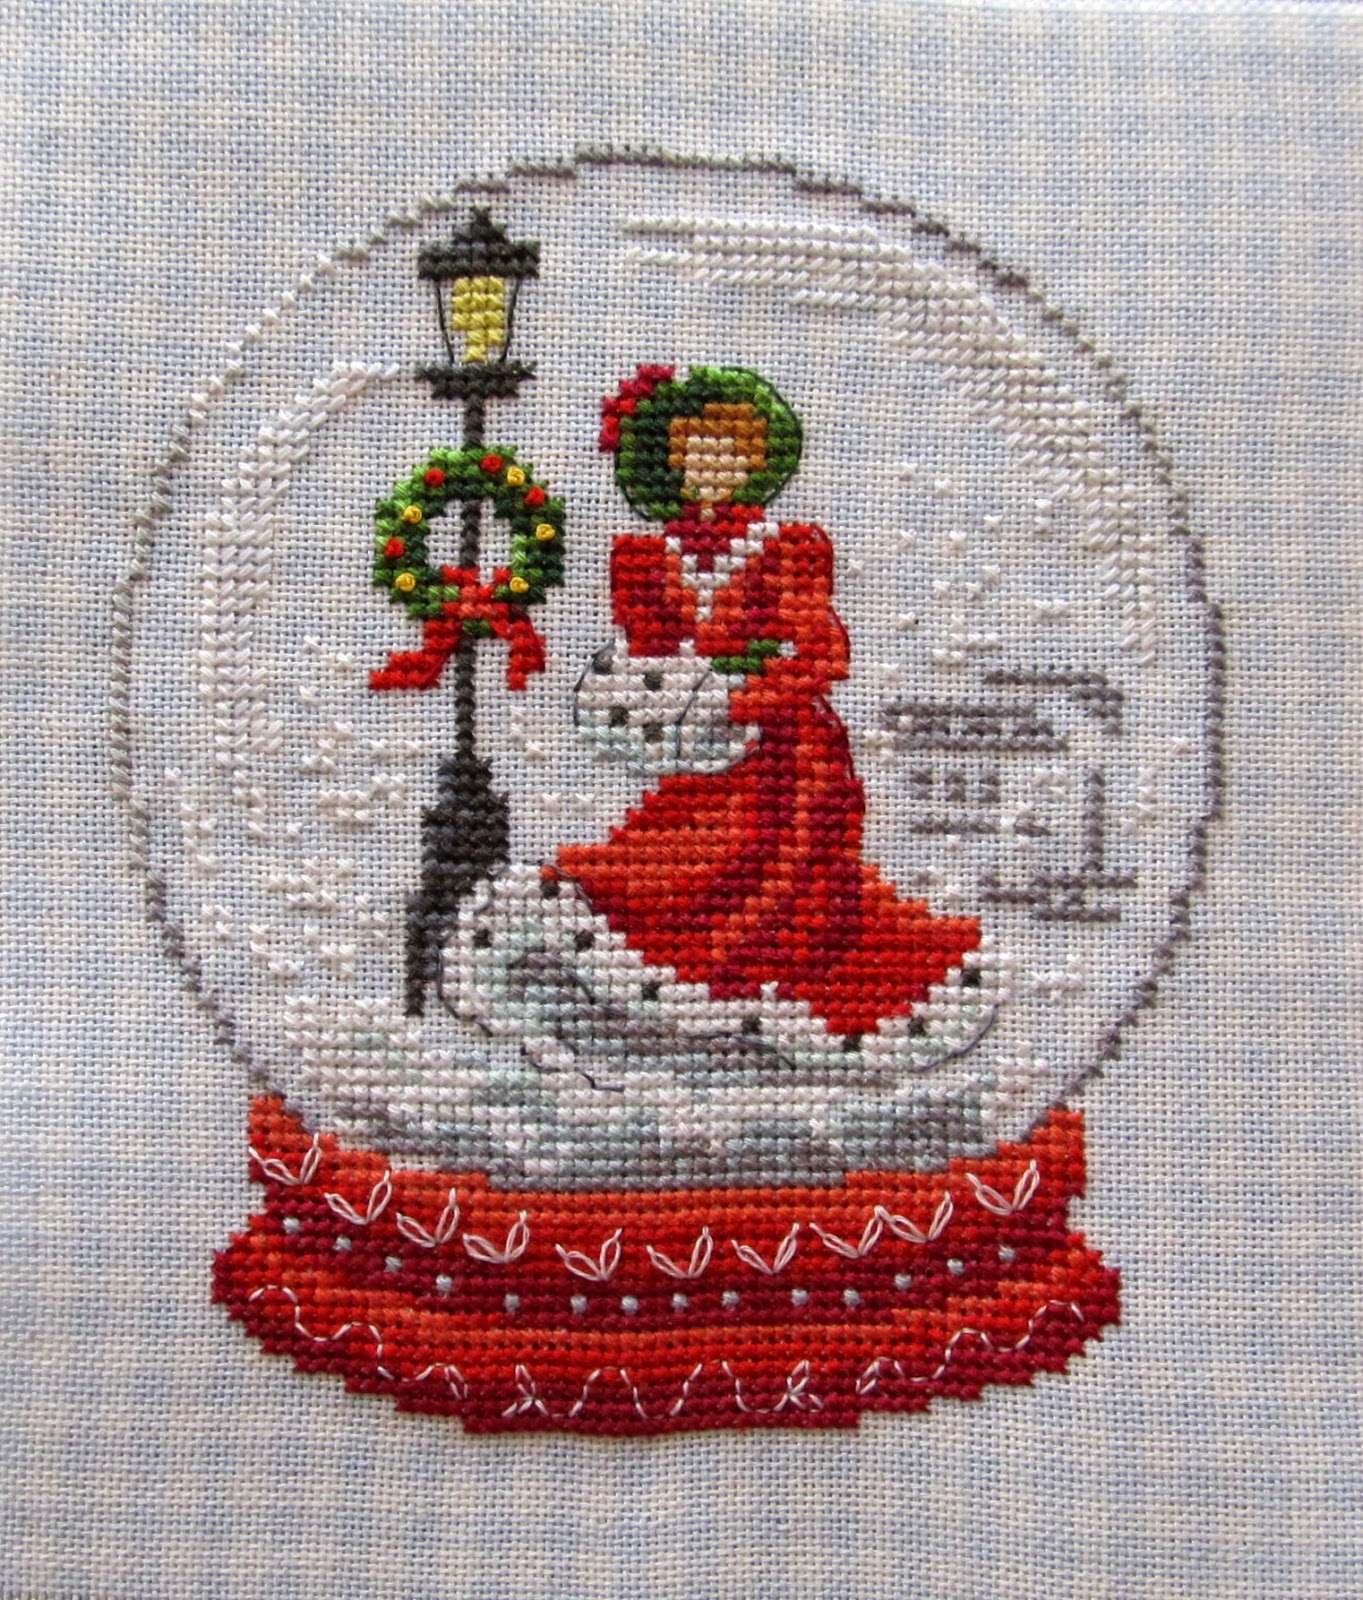 Christmas cross stitches, Snowflakes and Reindeer on Pinterest